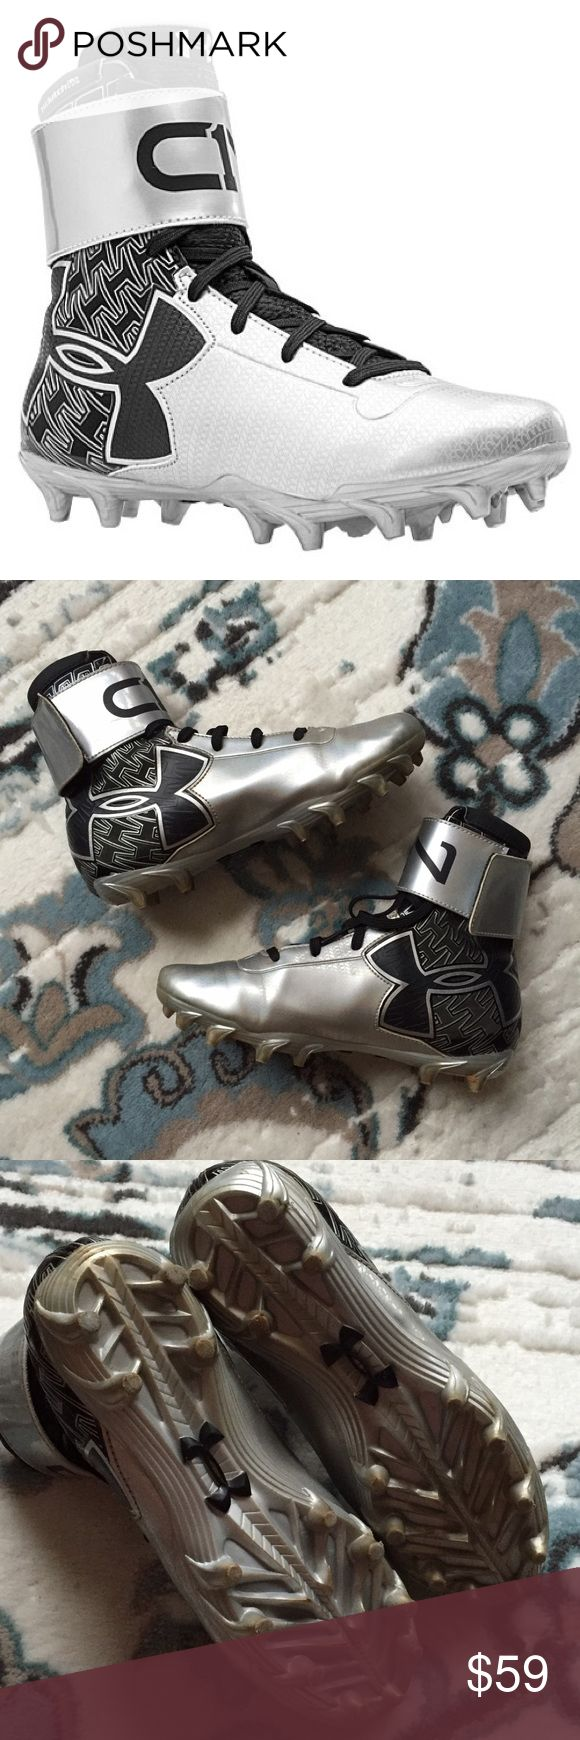 "Under Armour Cam Newton C1N Football Cleats 4.5Y Very good condition. Only worn a few times. Sold out style! Size 4.5Y.  UA ClutchFit is a ""second skin"" that molds to your body while you move, giving you powerful support & an incredible feel 3D-molded tongue gives you a custom fit for unrivaled comfort Foot-forming 4D Foam® footbed molds to foot for a locked in, comfortable, customized fit The C1N logo tells you this shoe signed, sealed, and certified by the most electric QB in the game: Cam…"